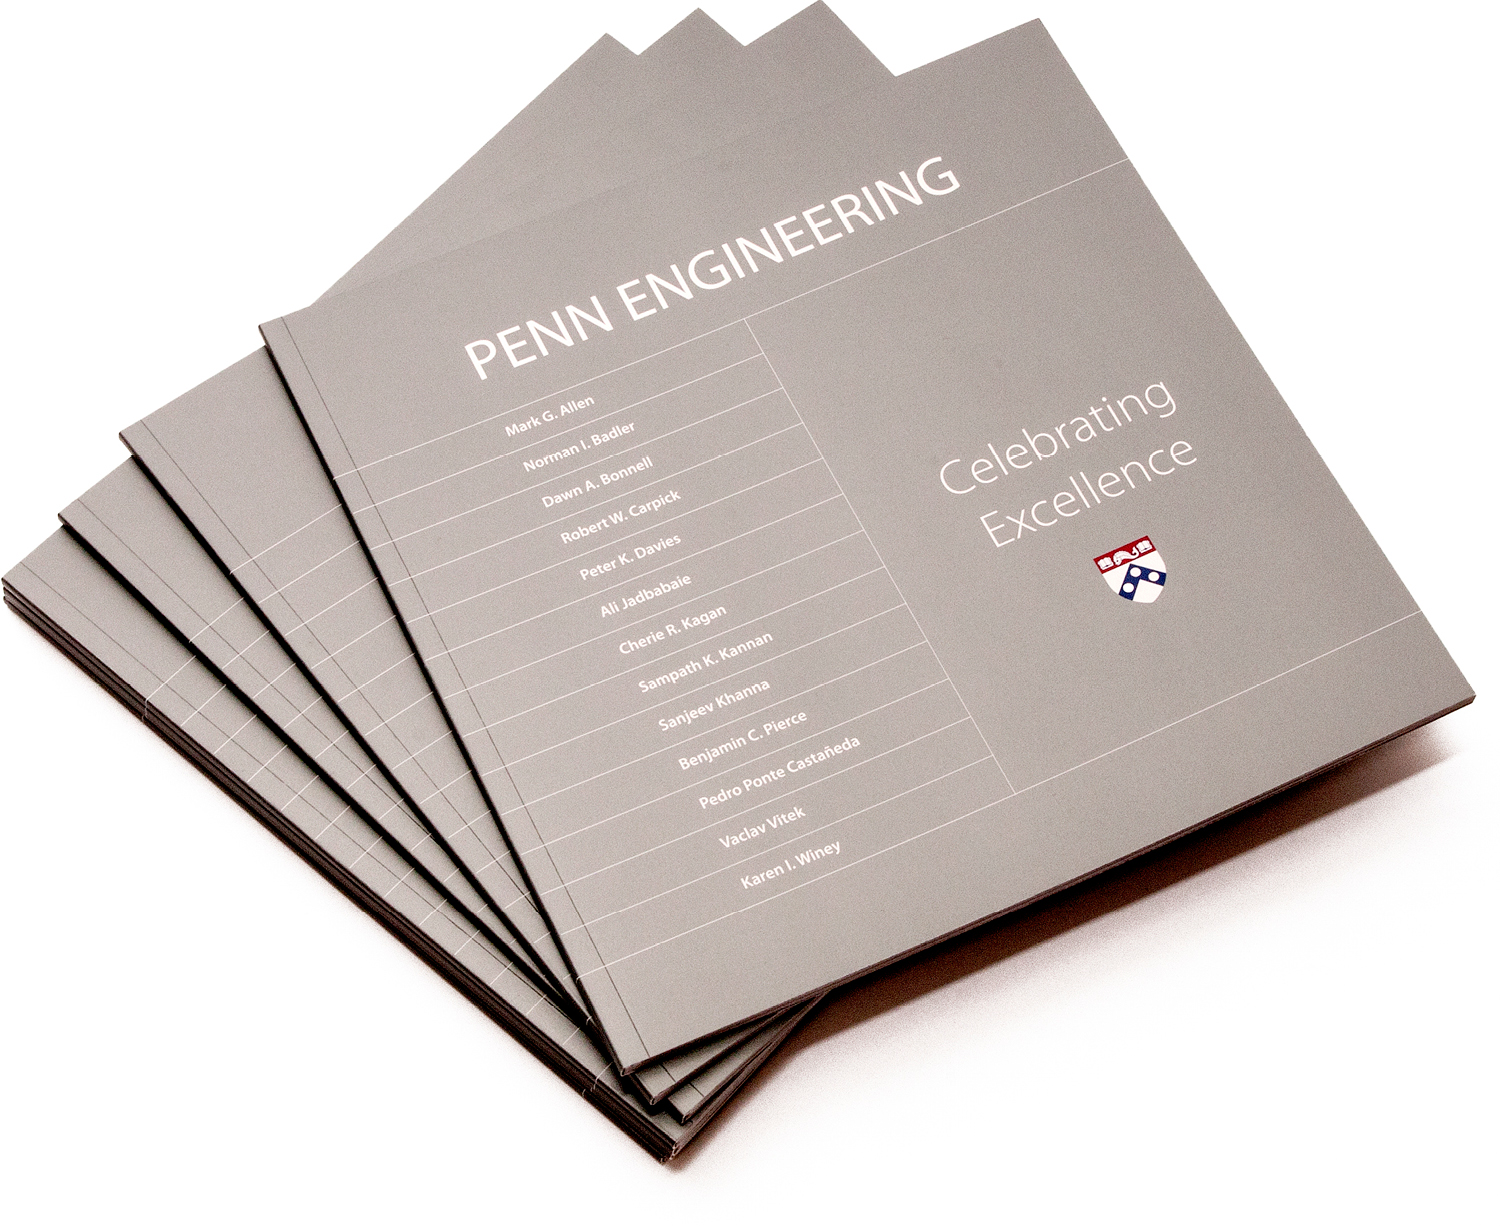 Penn Engineering + Applied Science